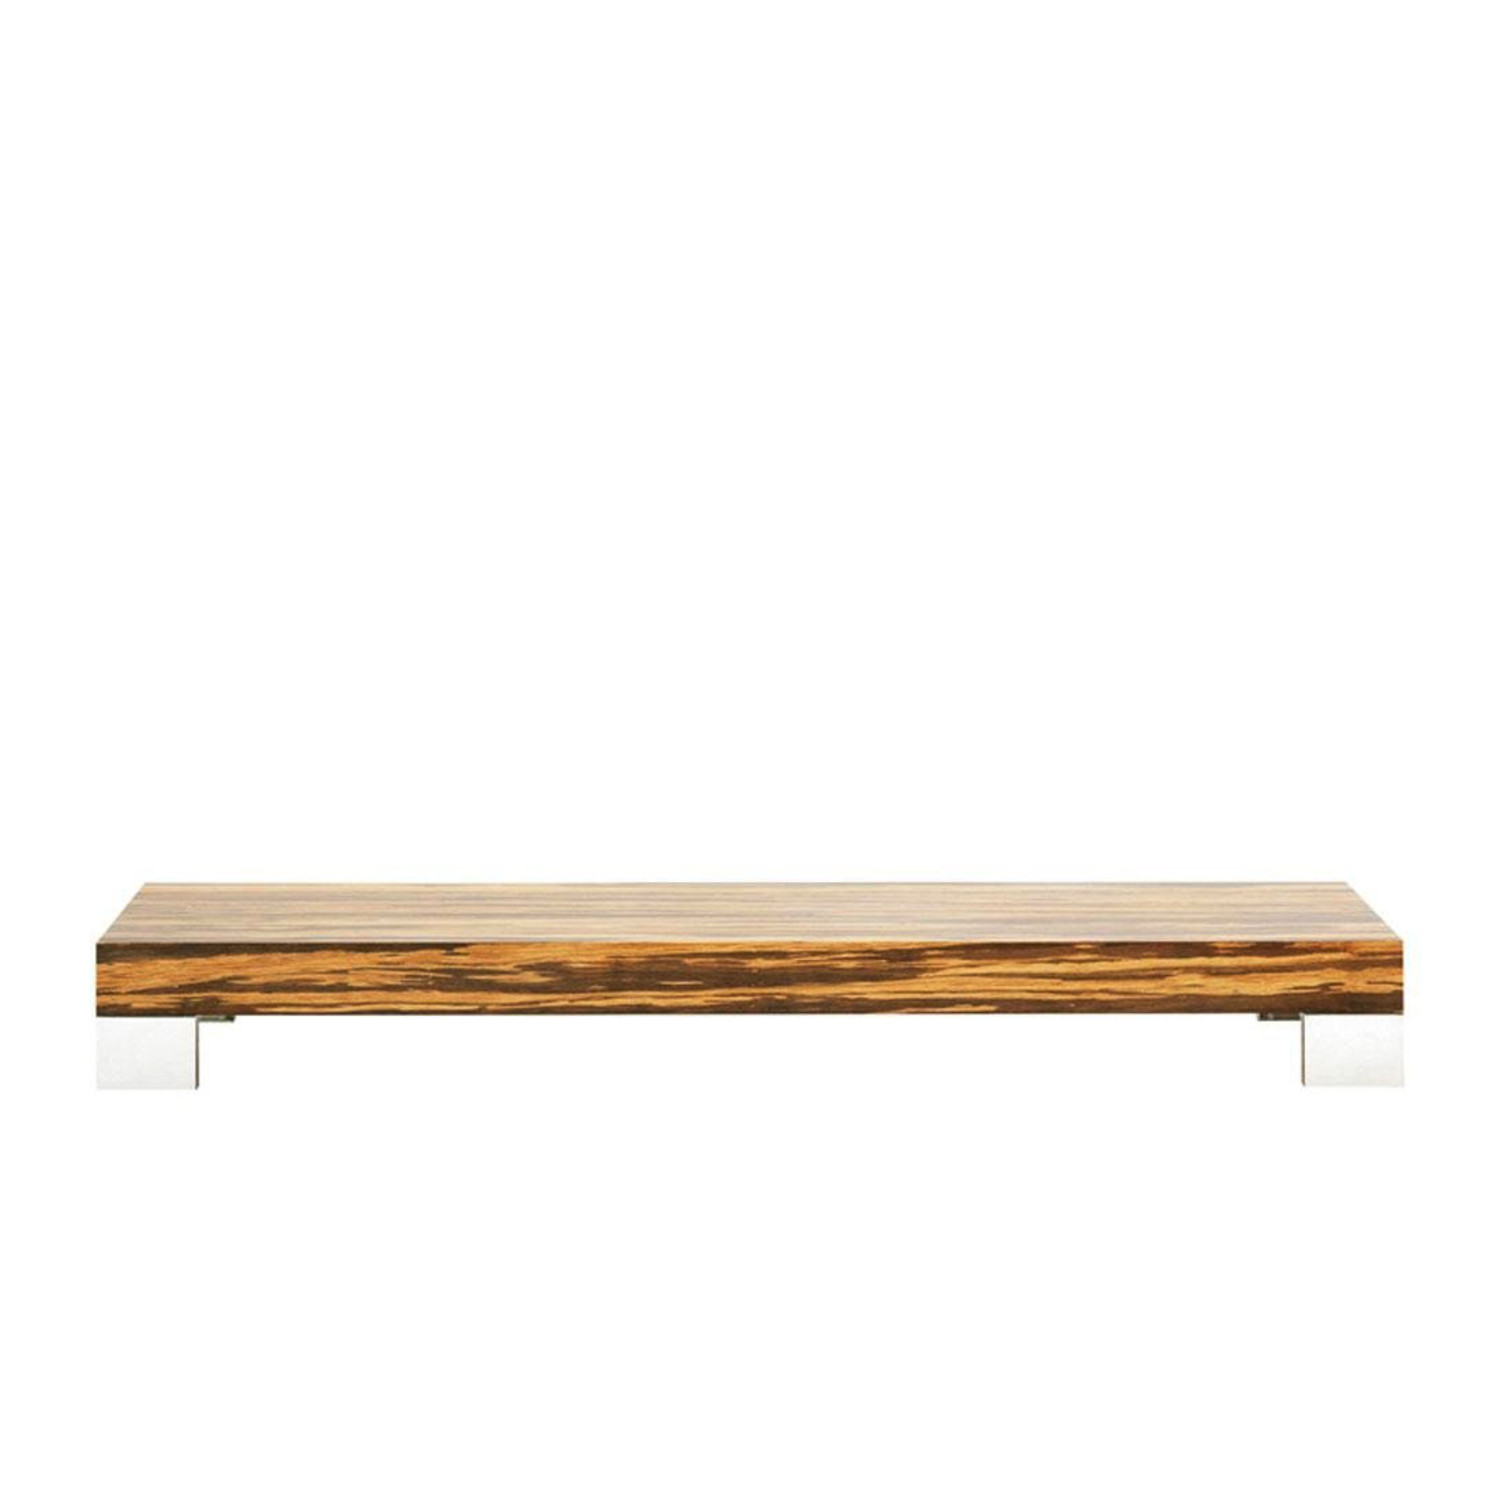 Gentil Magnolia Low Table/Bench